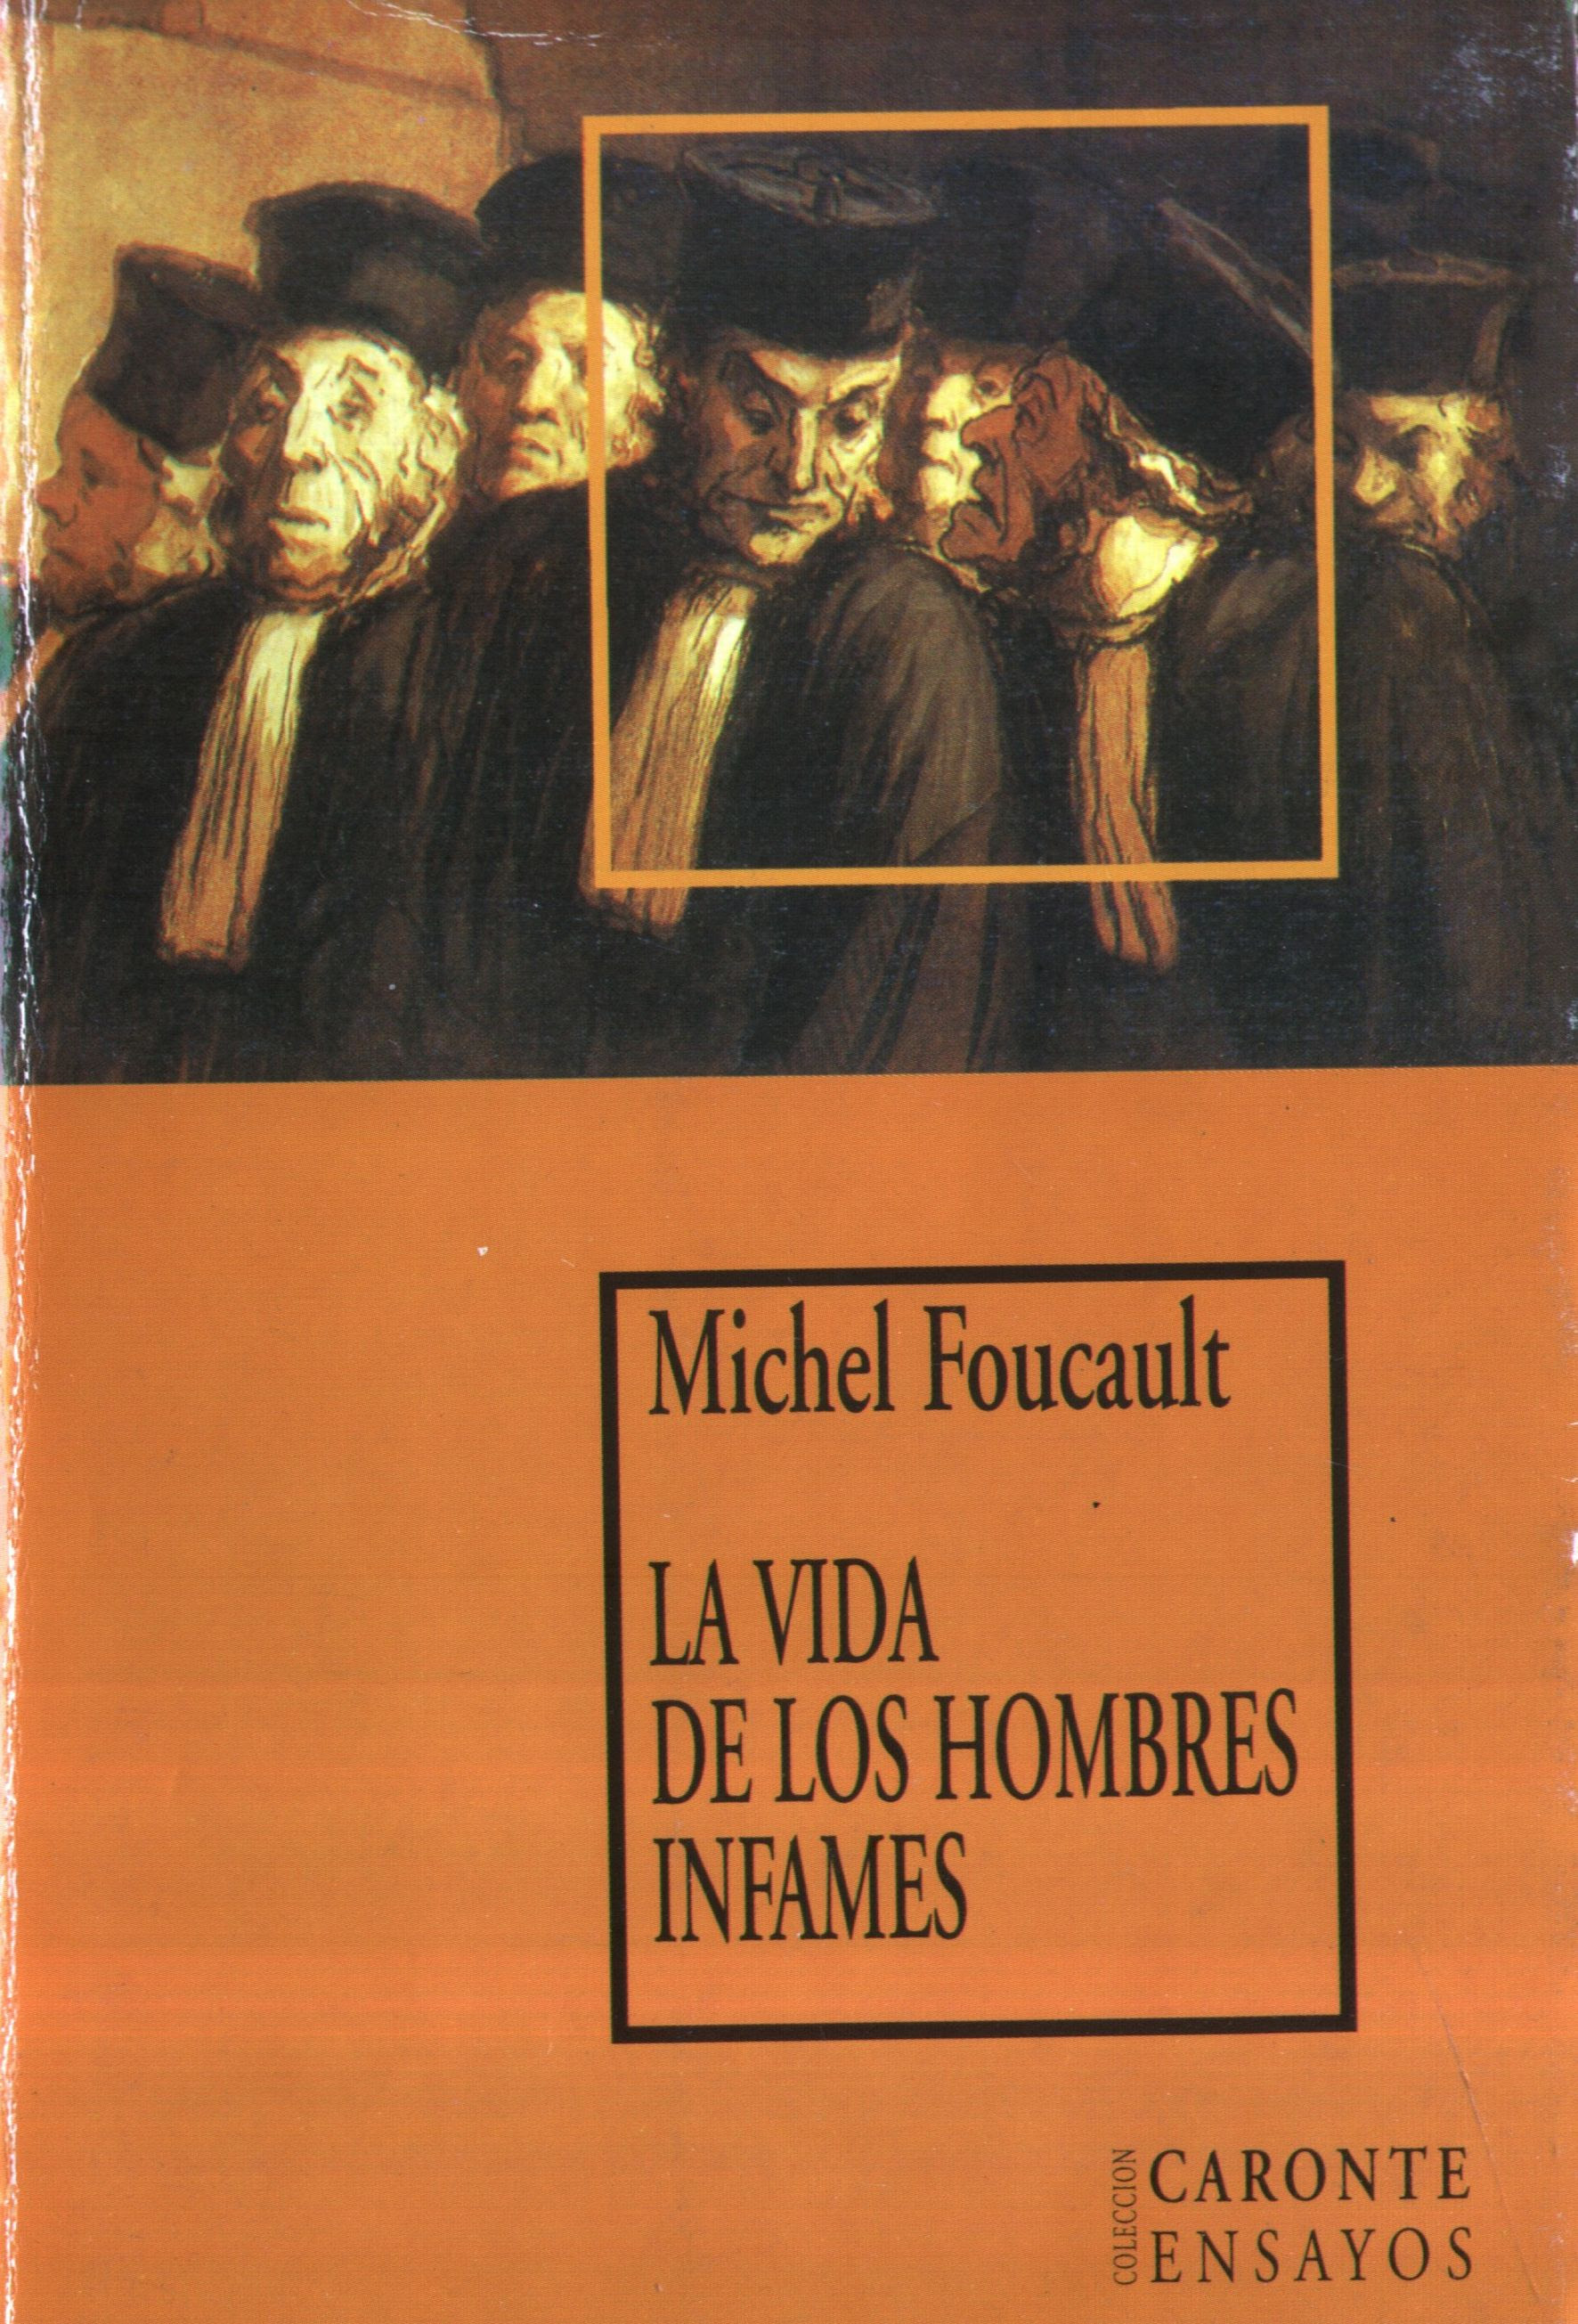 http://tramasintelectuales.files.wordpress.com/2009/06/foucault_hombres_infames.jpg